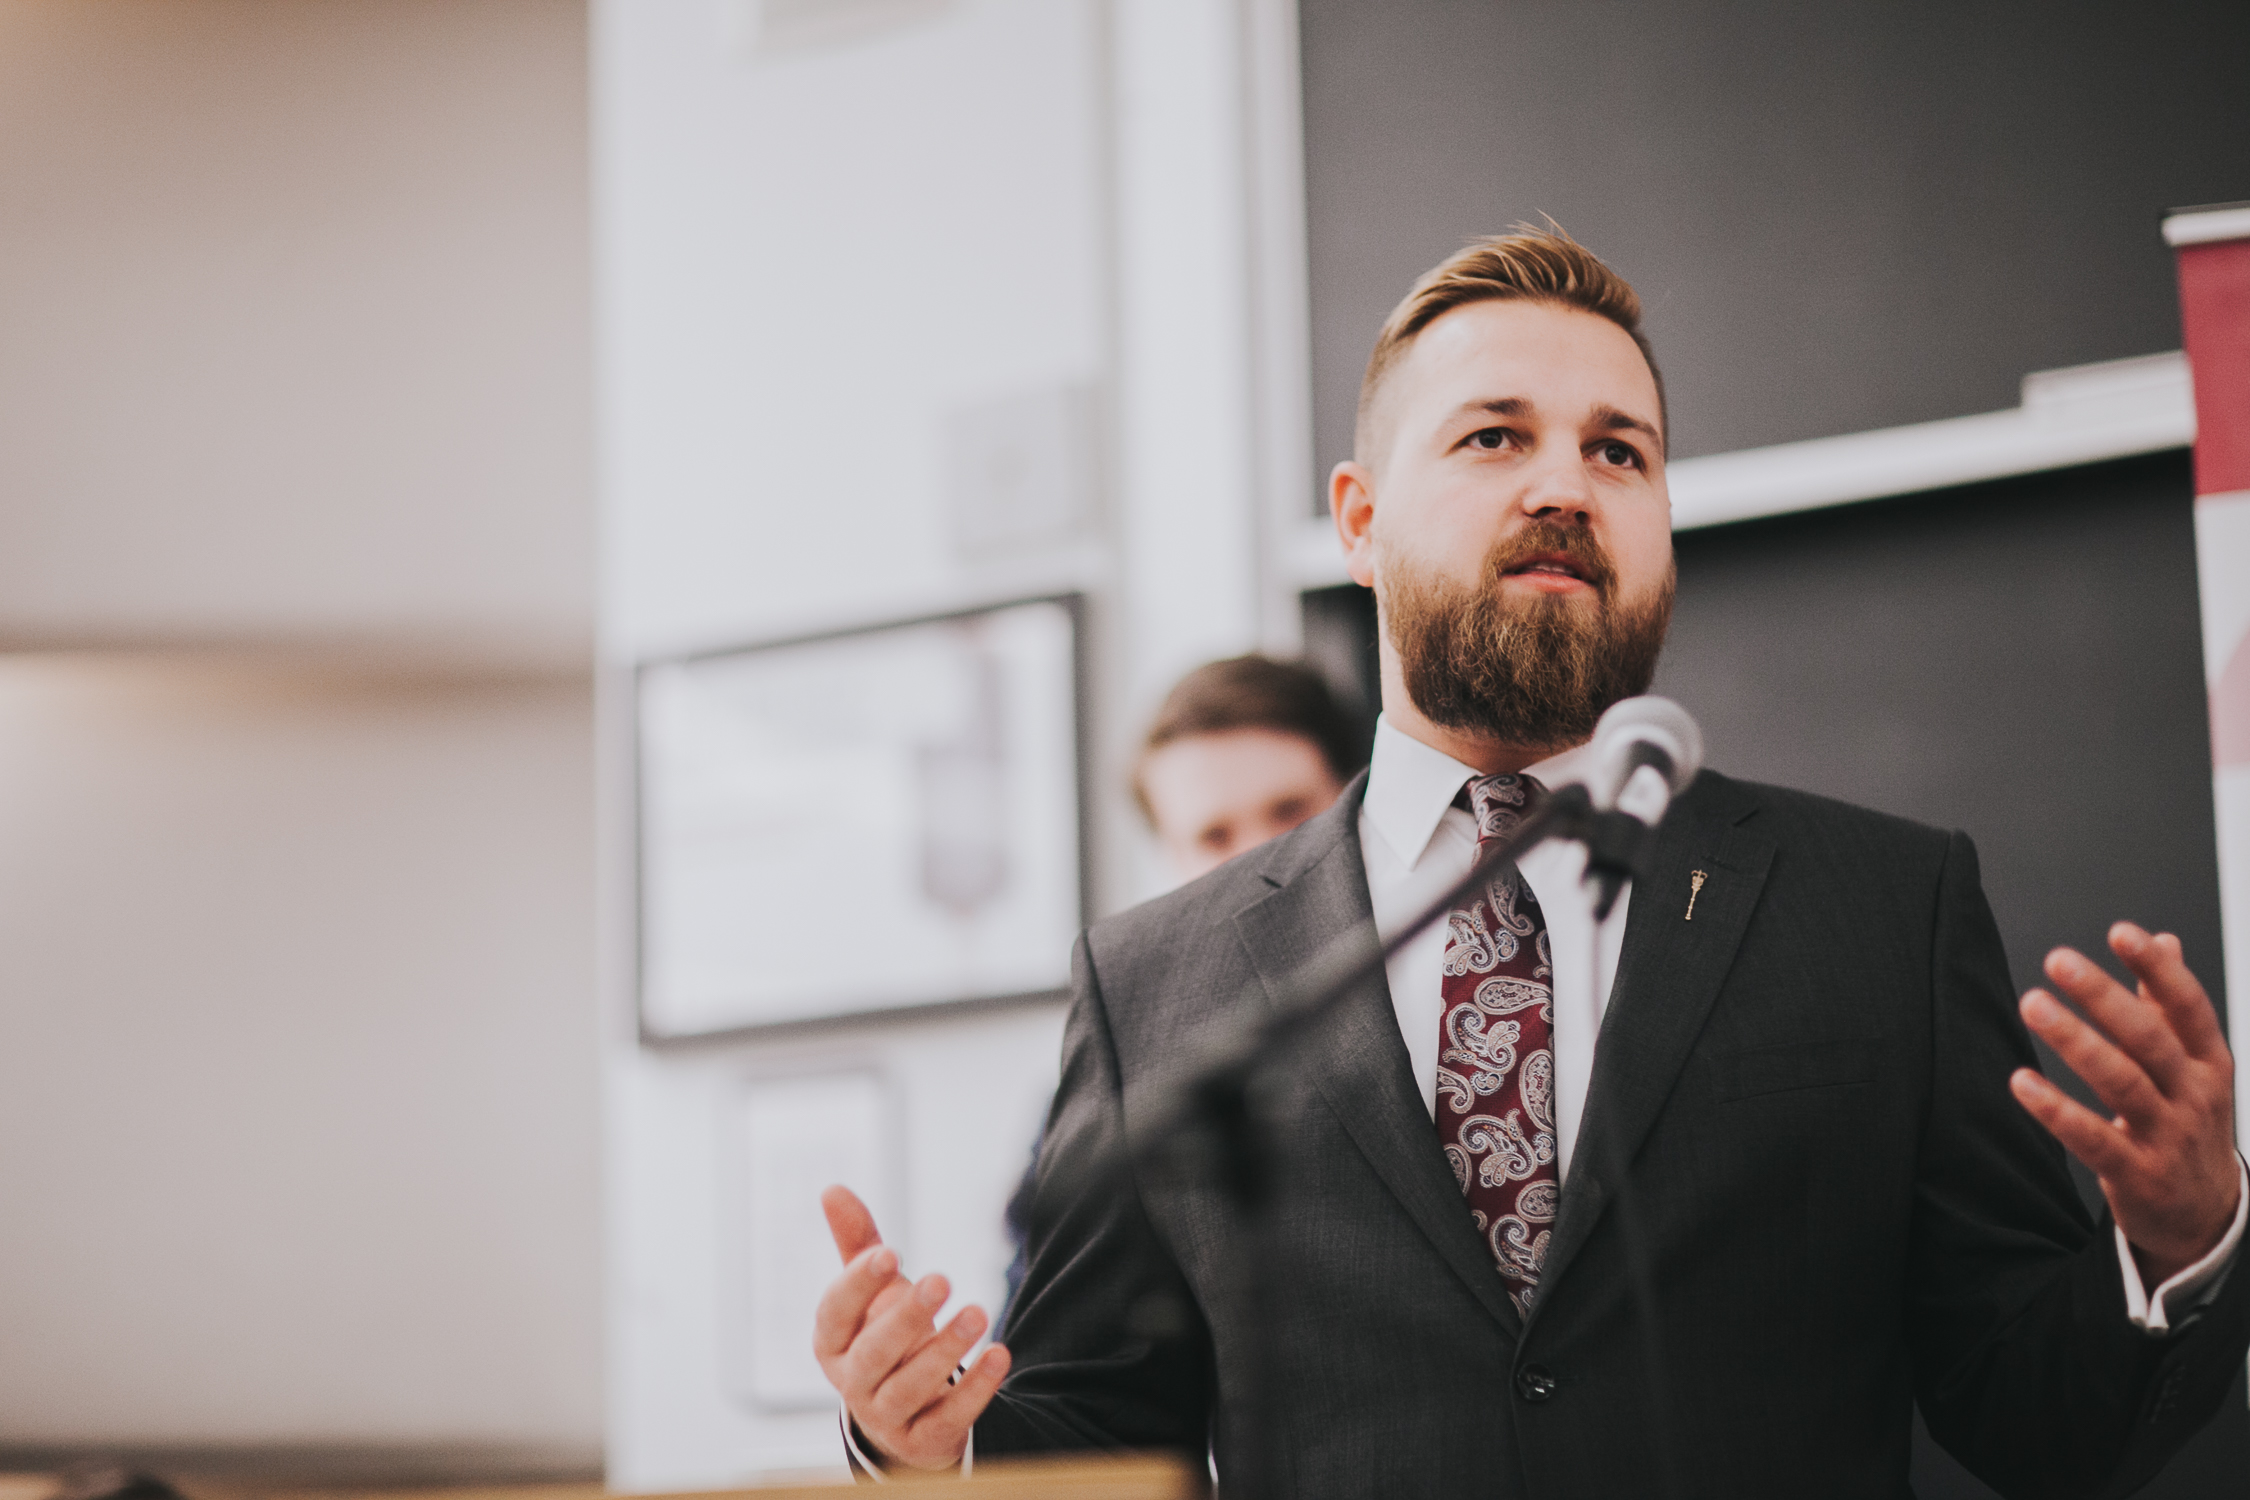 Fildebrandt Launches United Liberty to Support Unity, New Conservatism